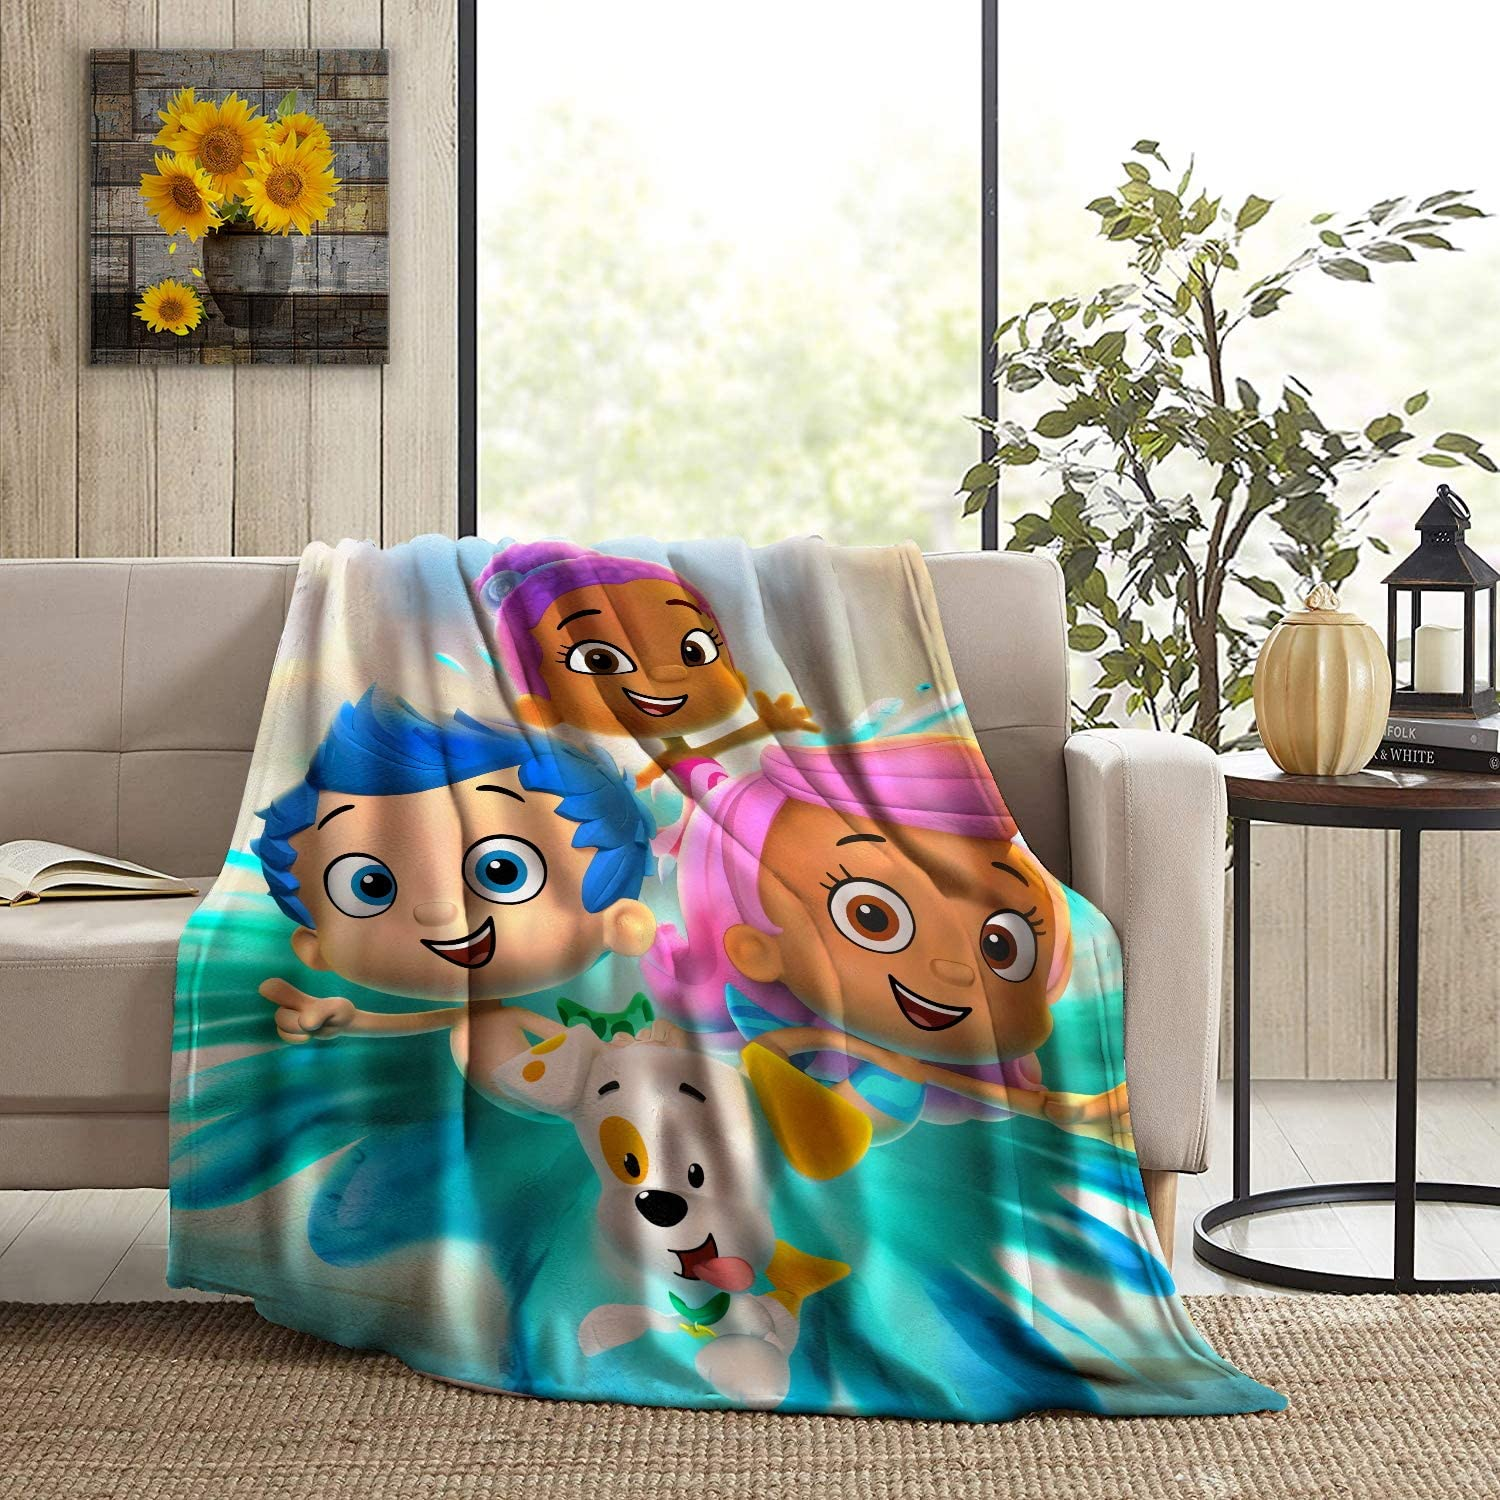 GIPHOJO Soft Micro Fleece Blanket Share and The L-ove Plush Flanne Throws Blanket for Children Kids Boys Girls for Bed Sofa Couch Chair Lightweight for All Season Gifts 50x40